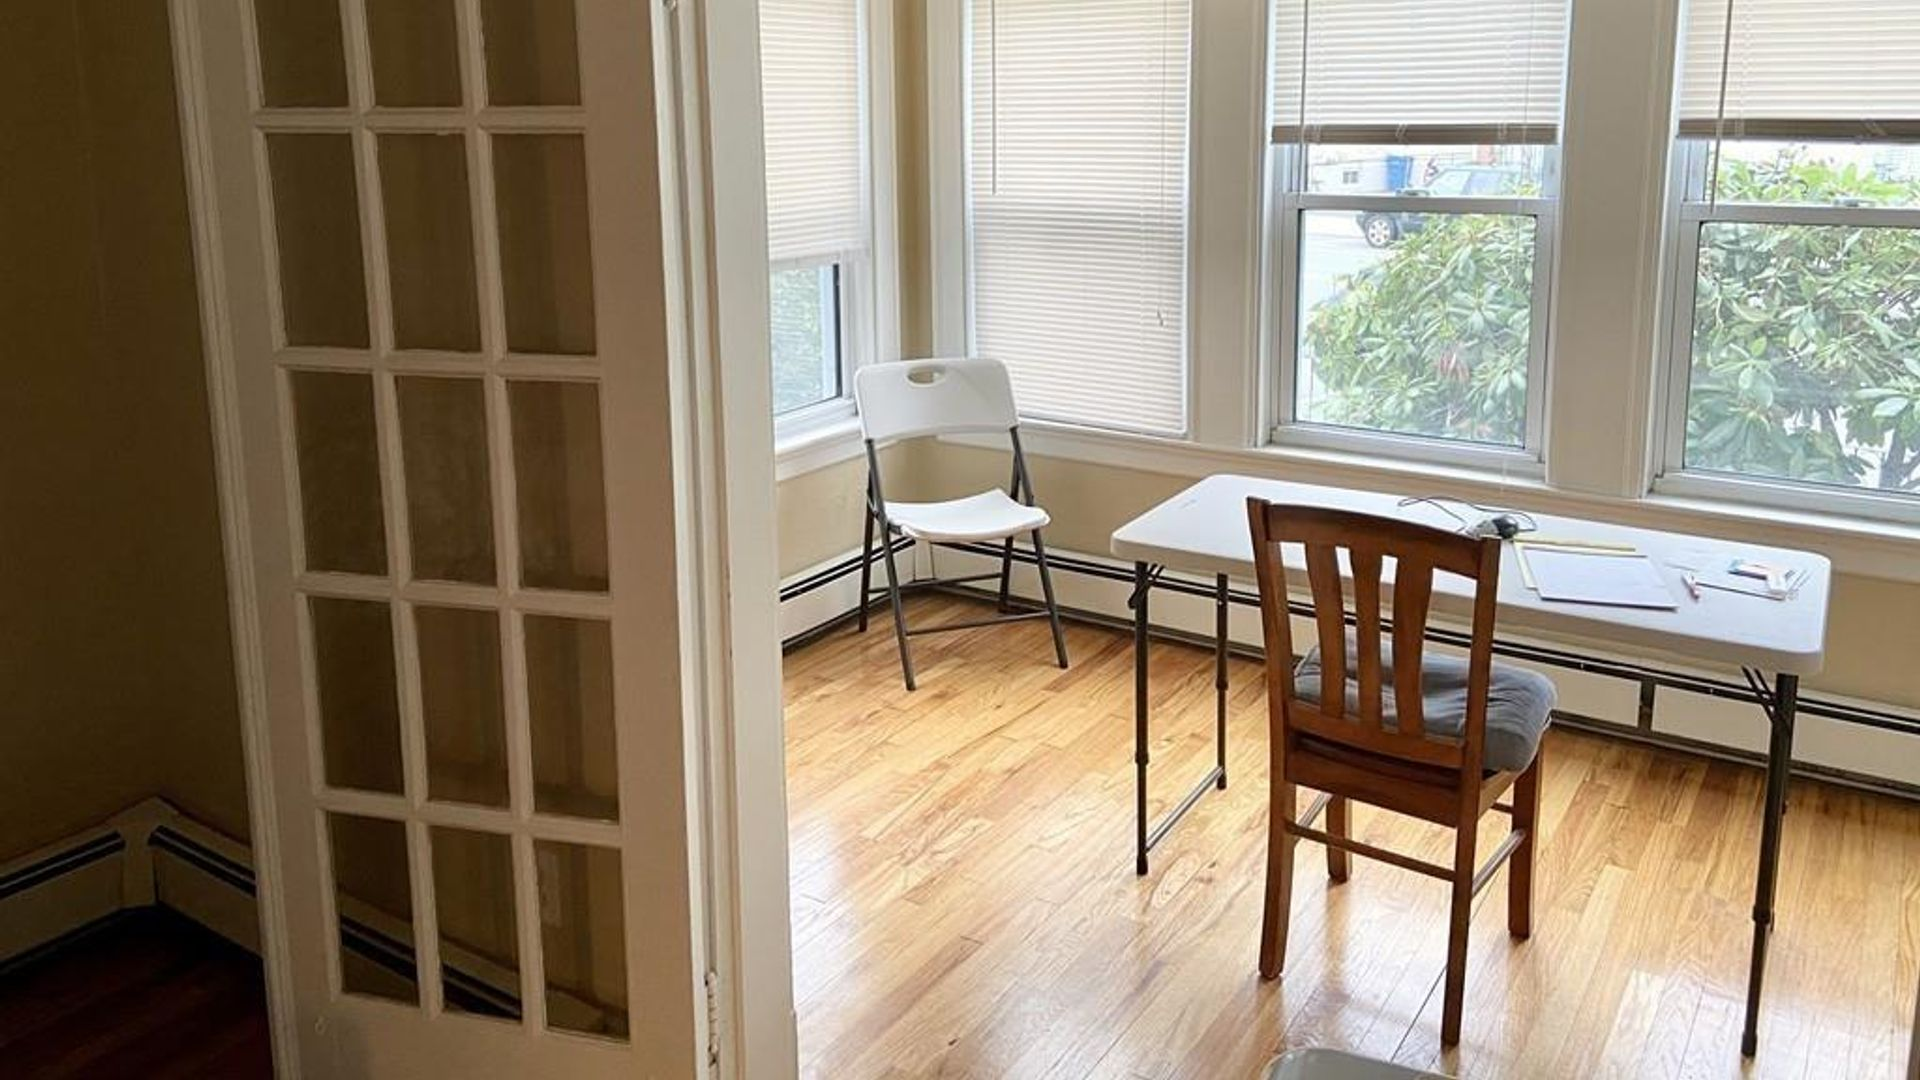 2 bed apartment at Belmont Street, Watertown, MA 02178 ...